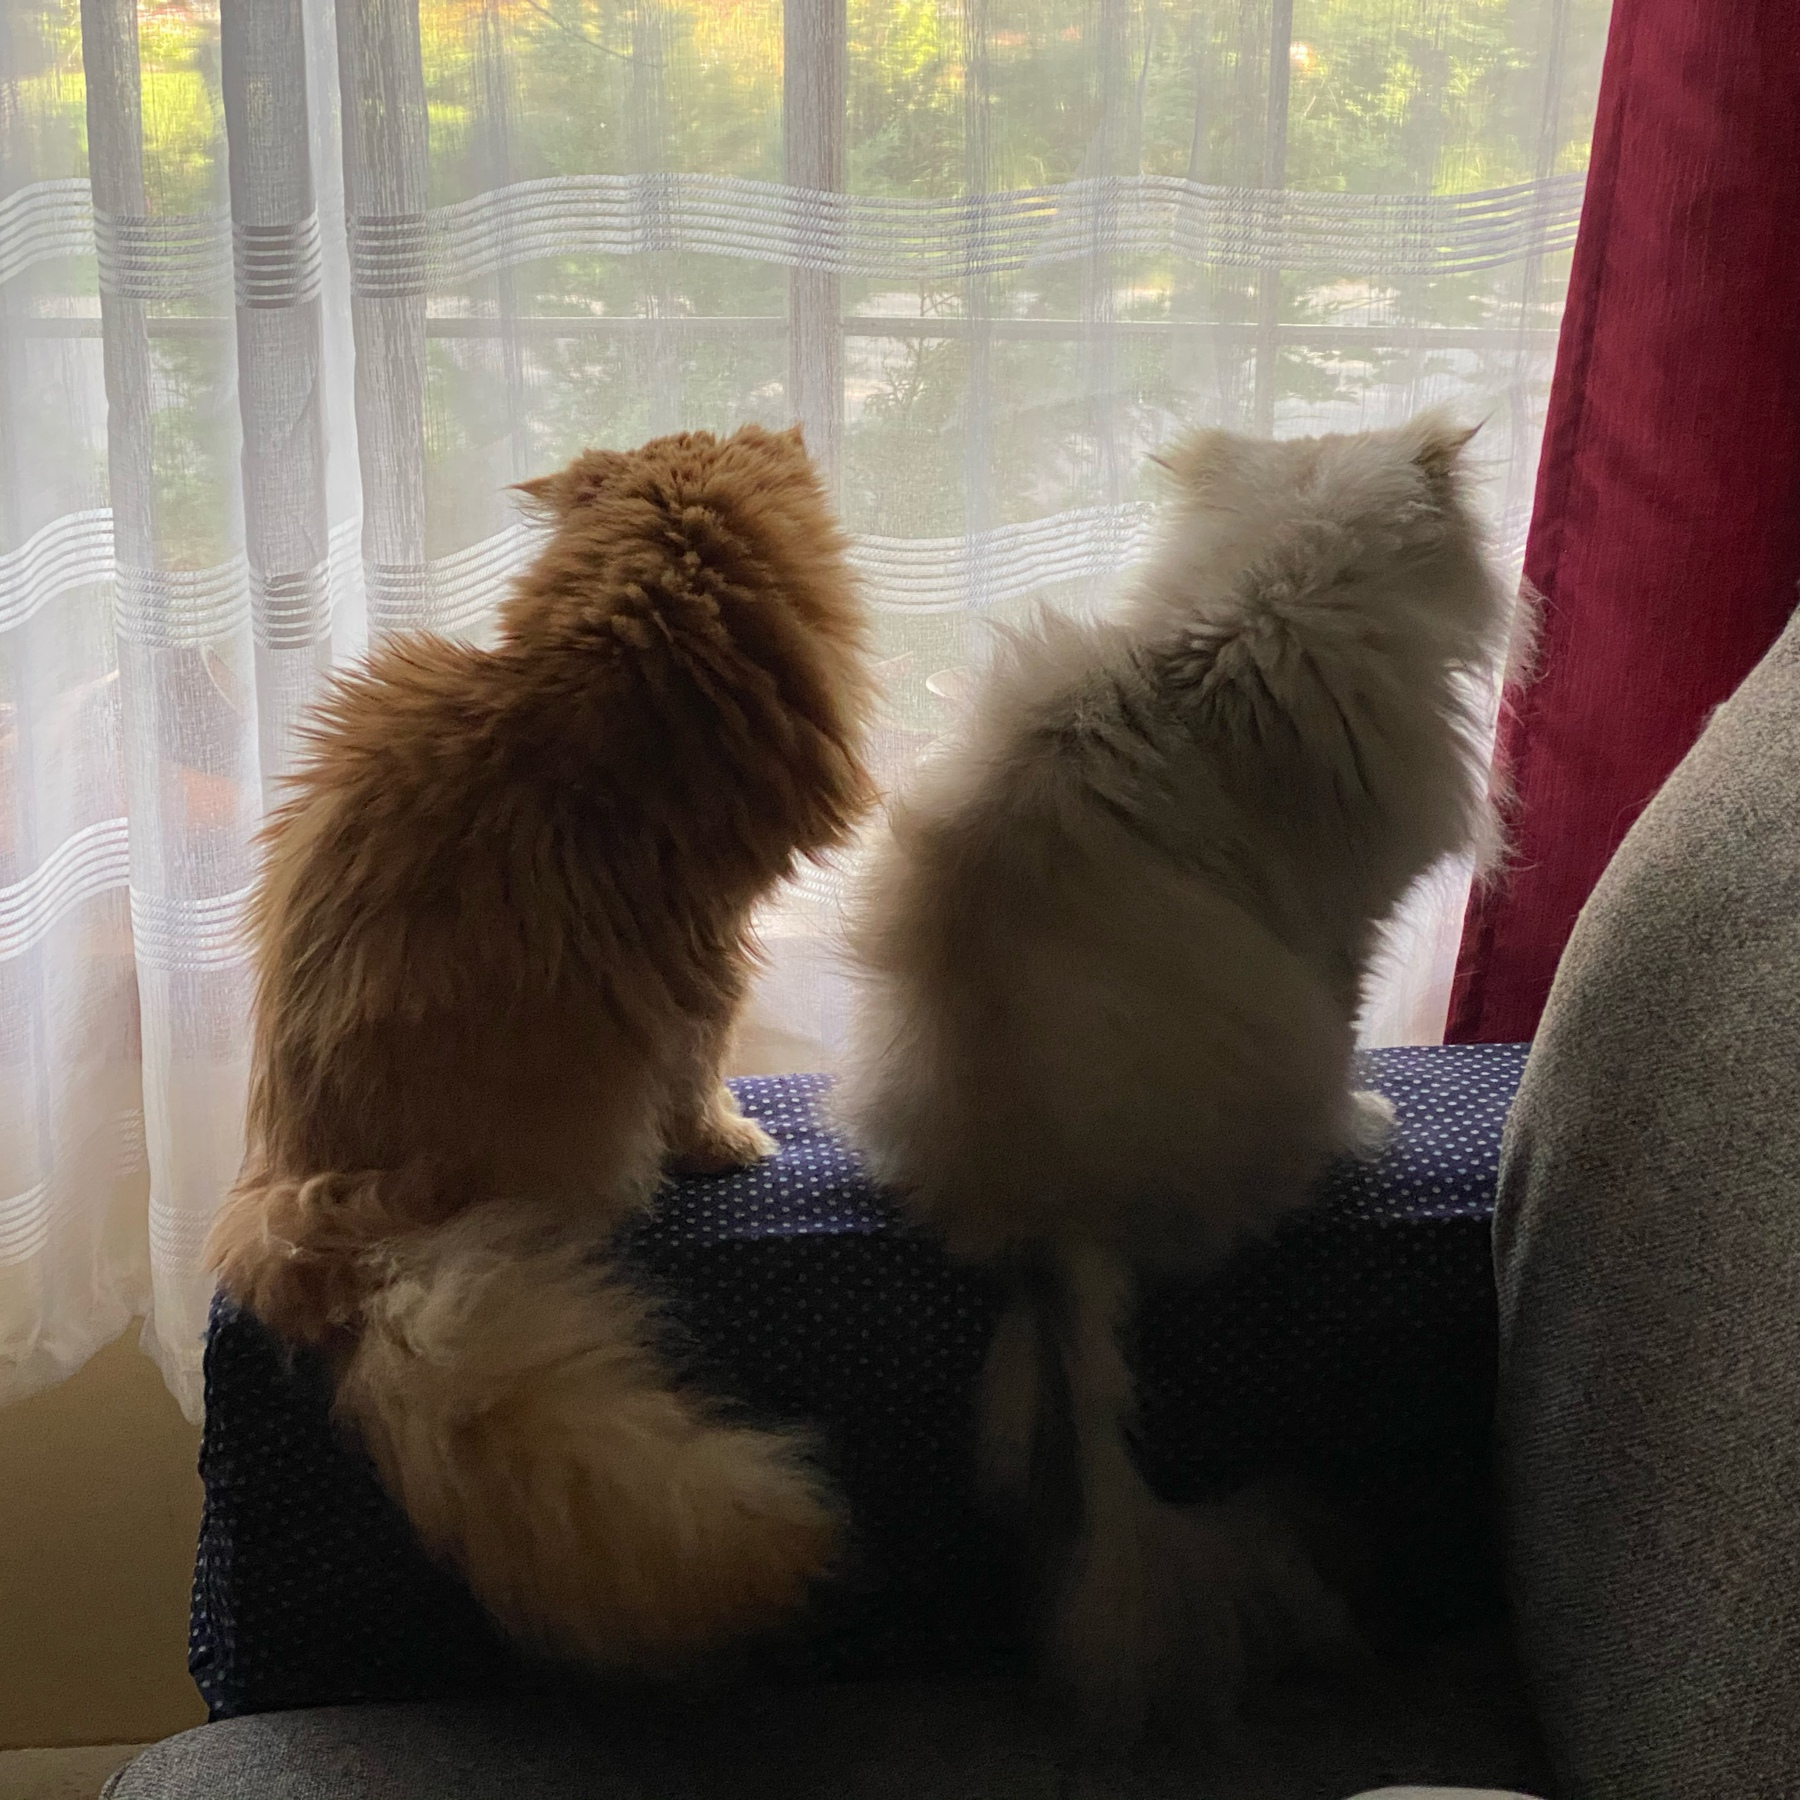 Two cats on the arm of a sofa looking out a window.